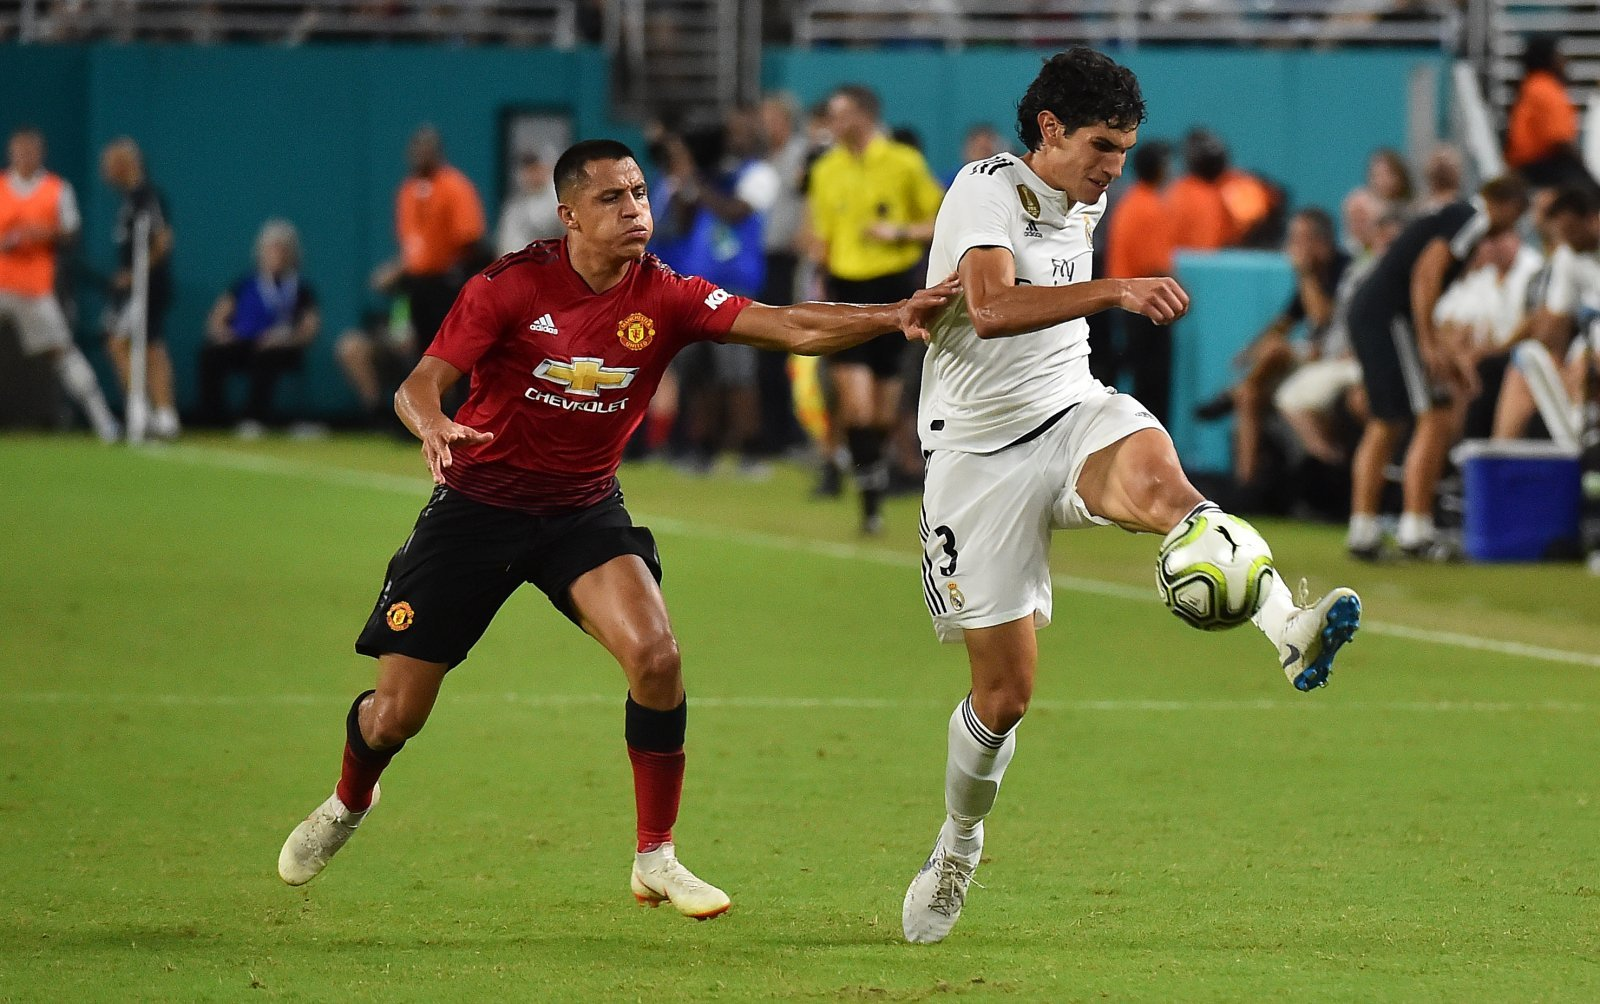 Wolves: Jesus Vallejo and Patrick Cutrone could secure first starts at Molineux